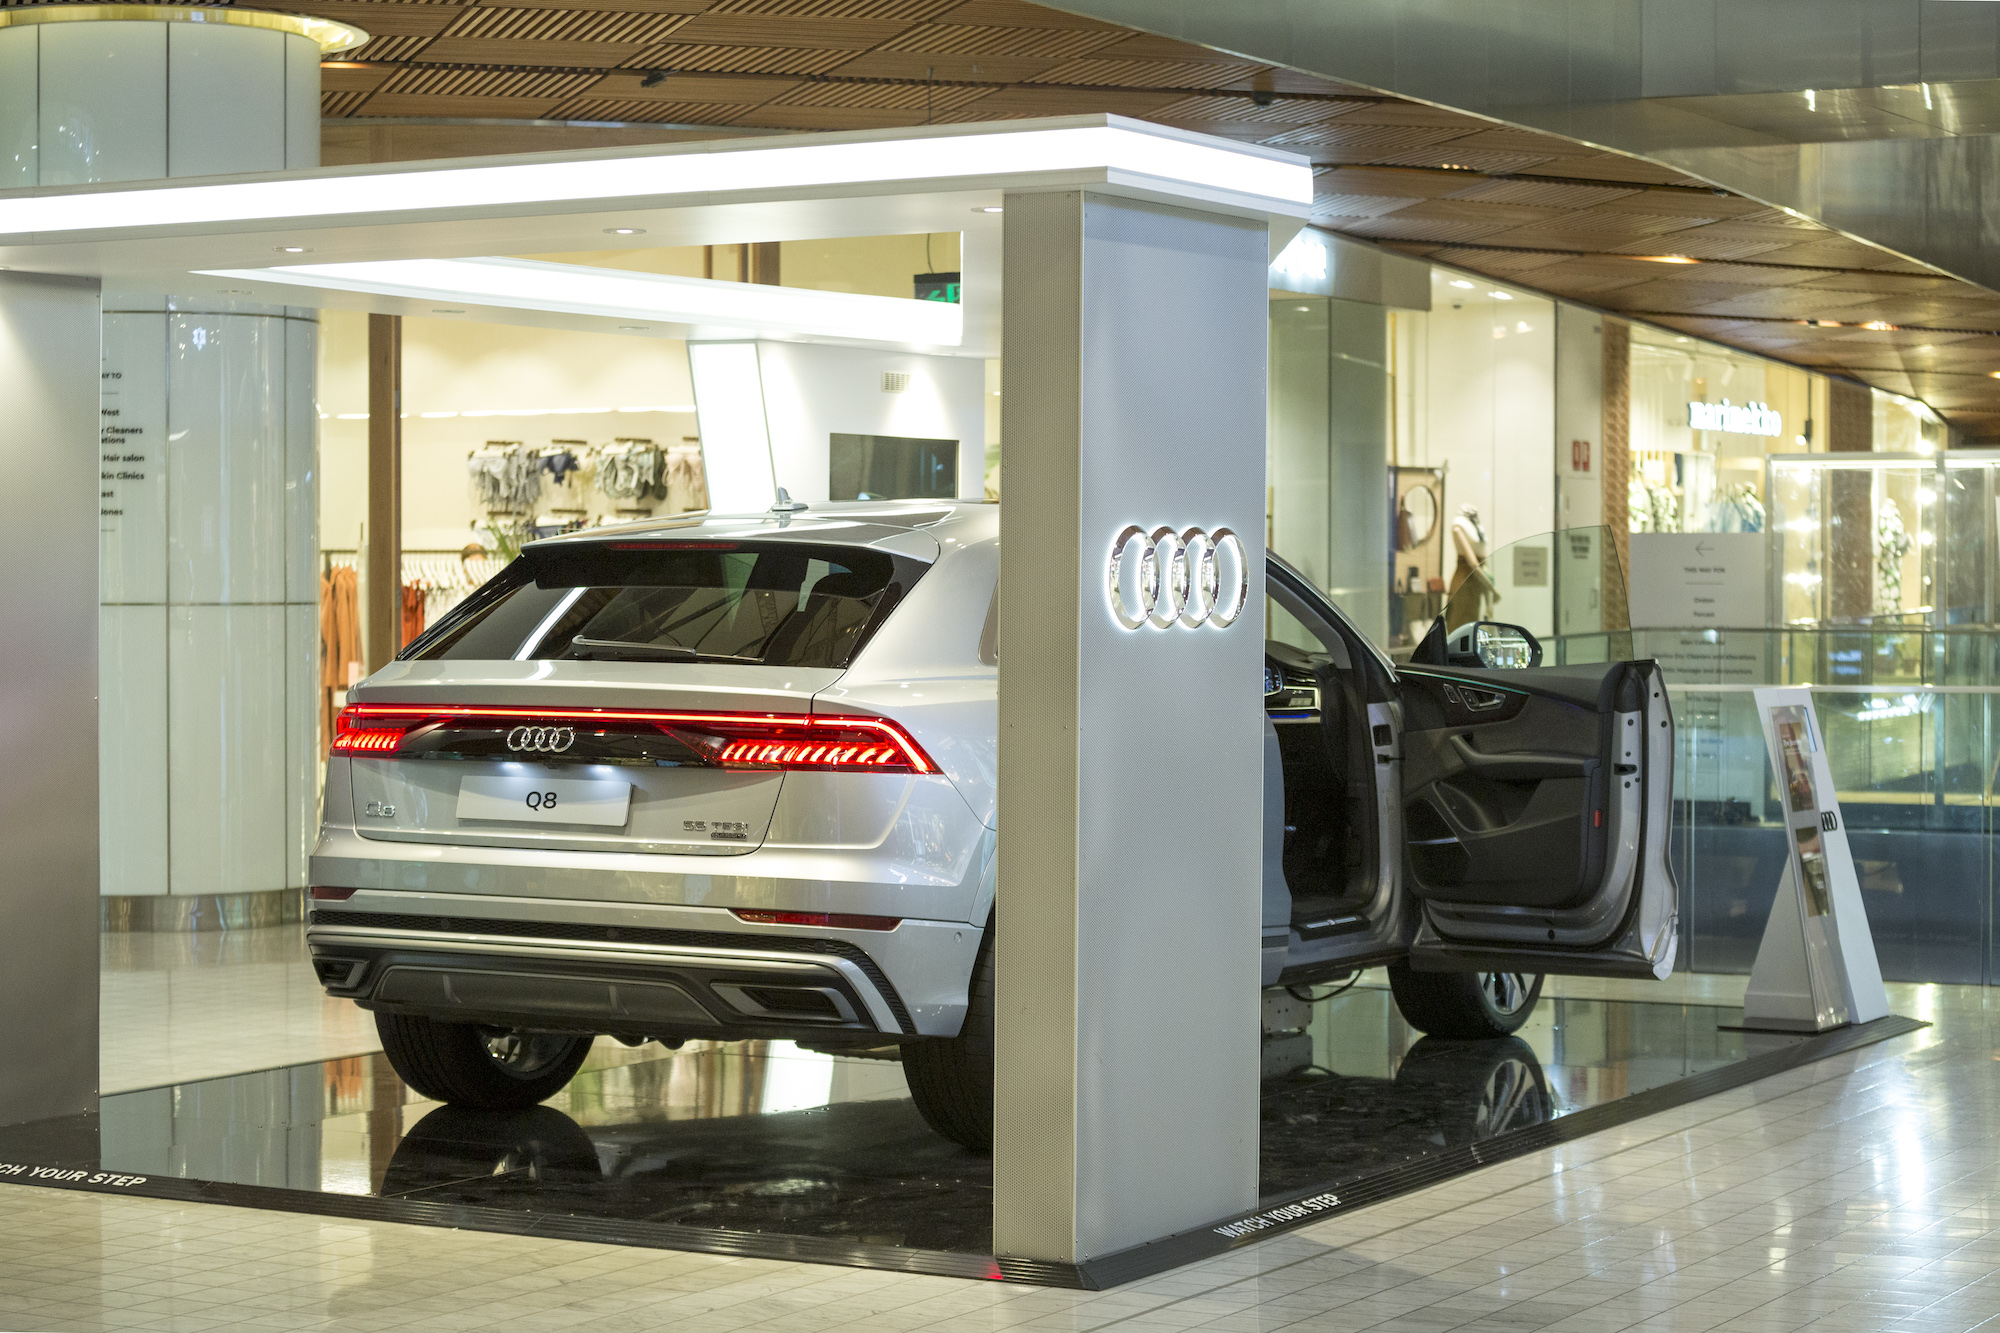 Audi Q8 Launch Display at Westfield Sydney, 2019